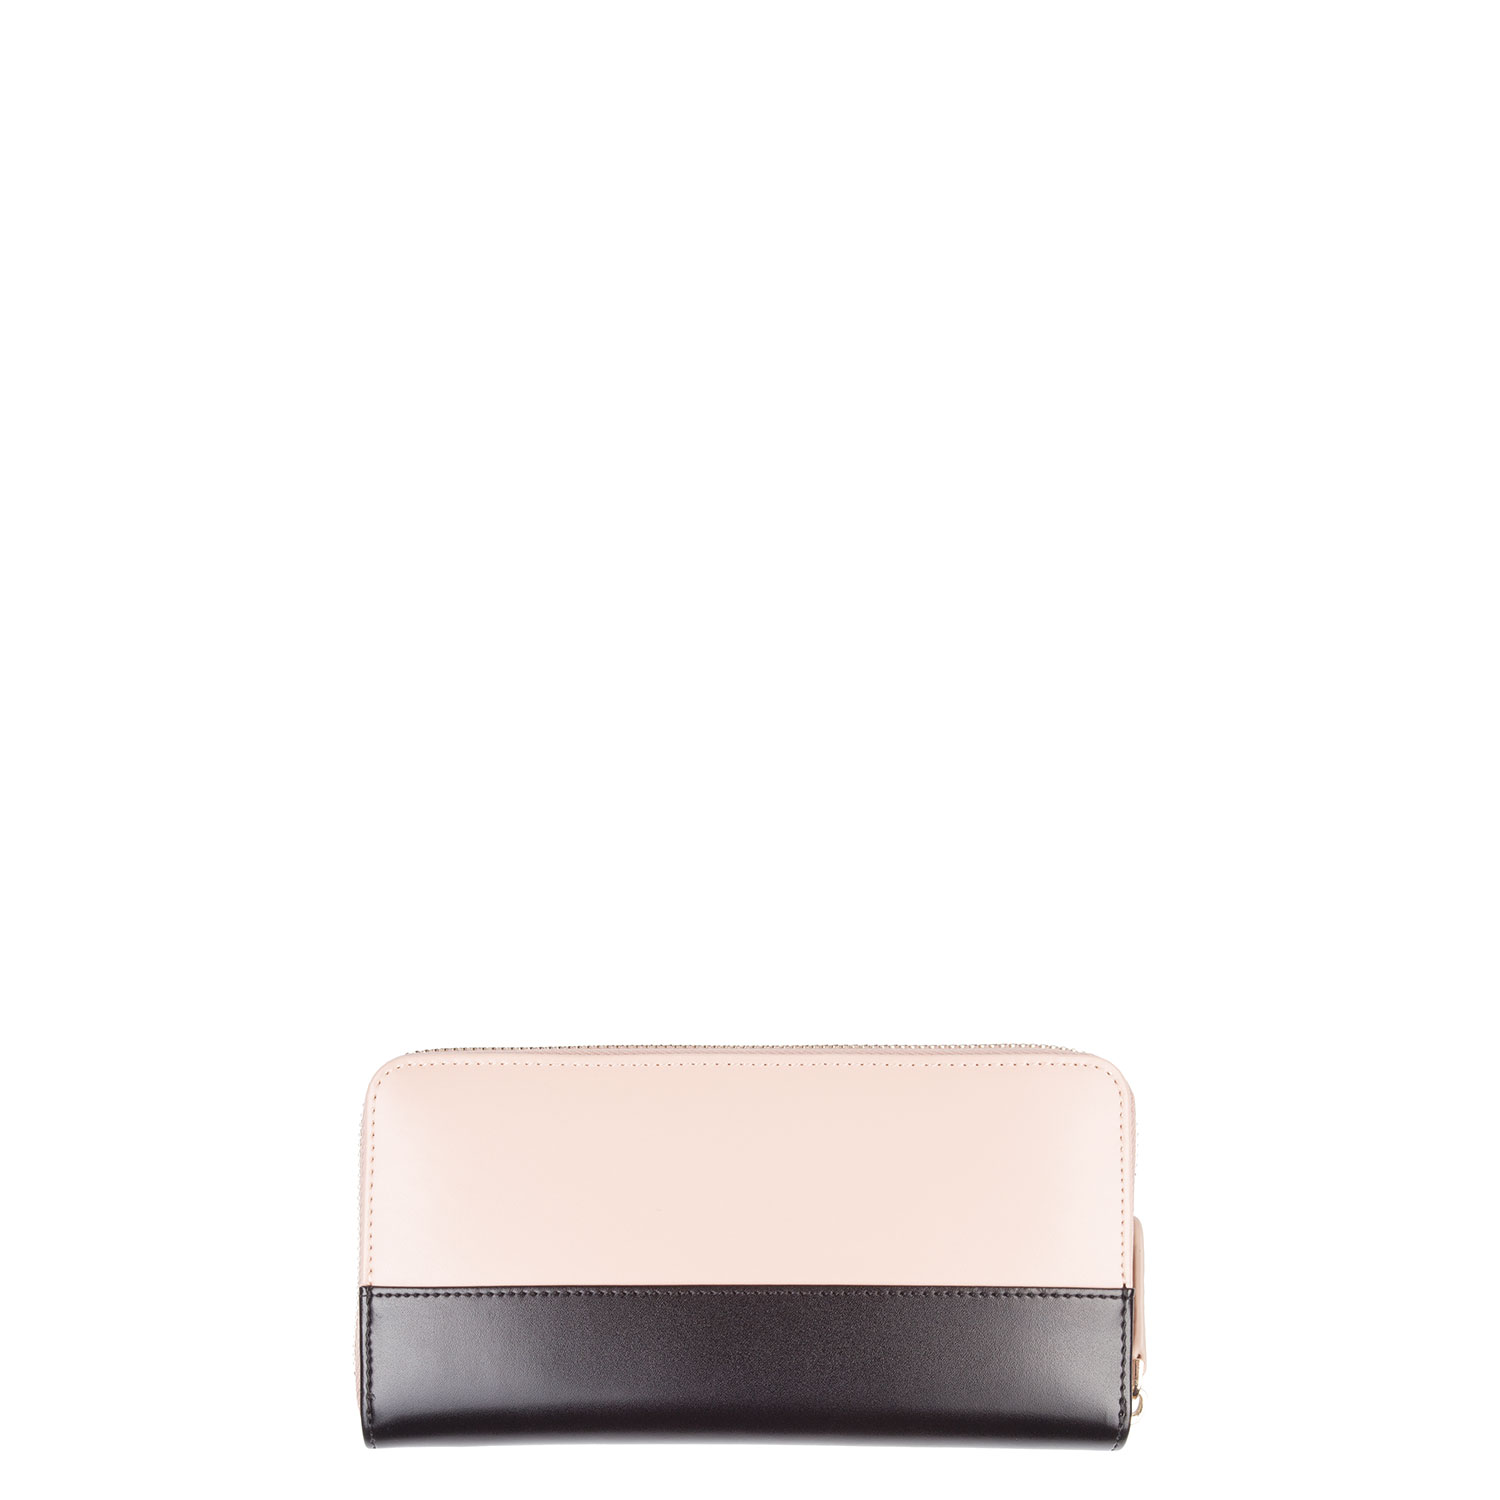 Women's wallet PAZOLINI BS-N80467-20